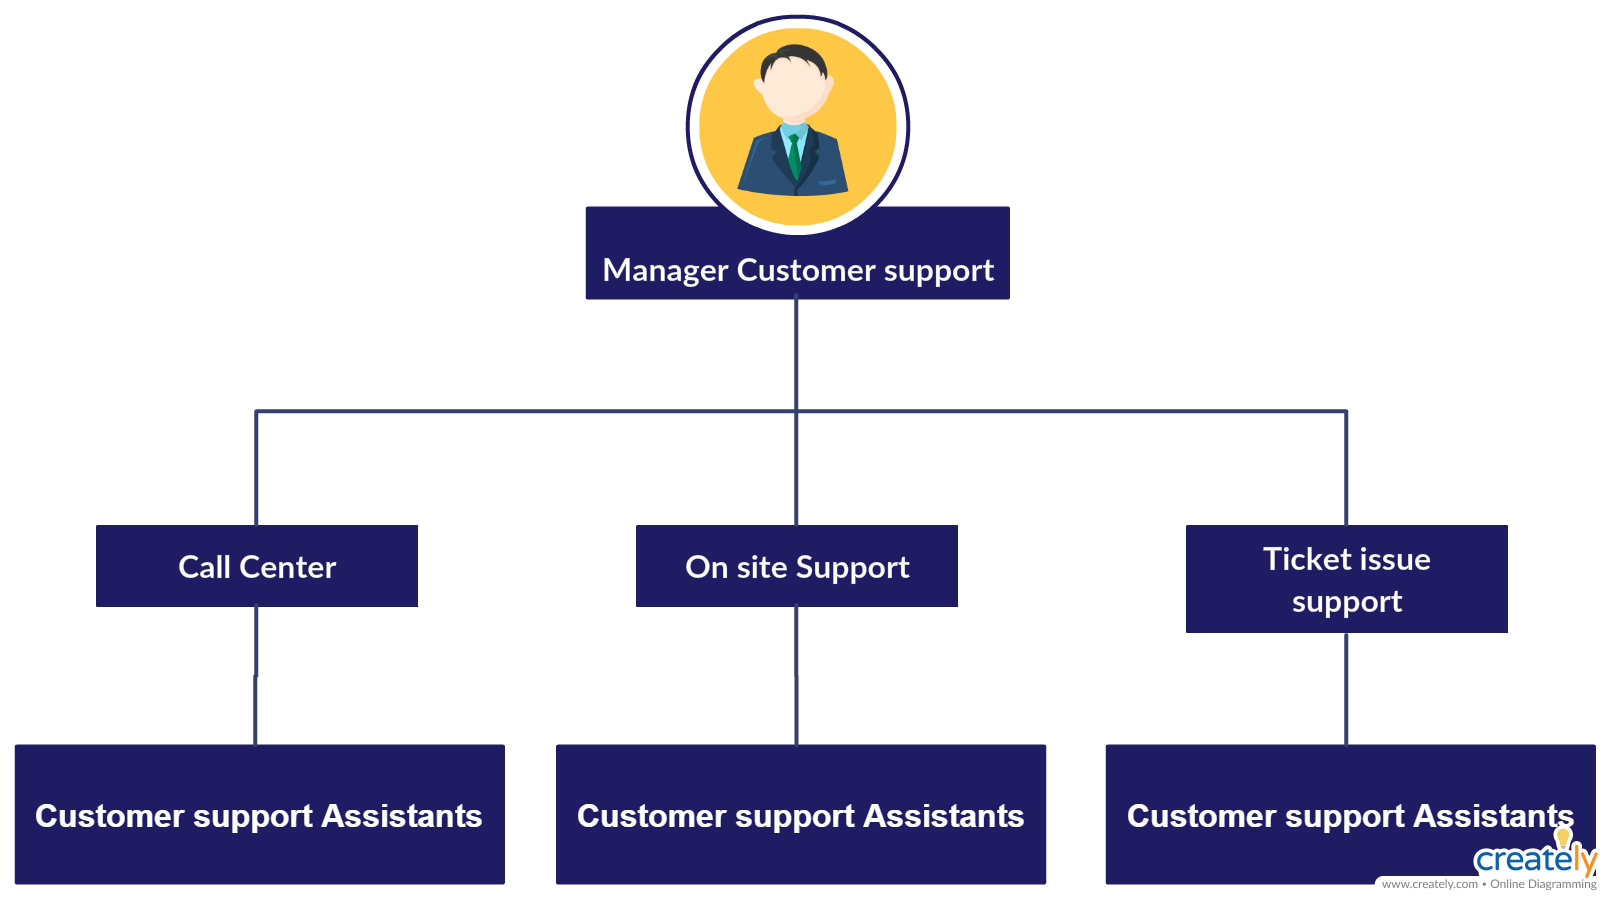 Customer Support Division Structure Org Chart Representing The Reporting Structure Of The Customer Support Org Chart Organization Chart Organizational Chart